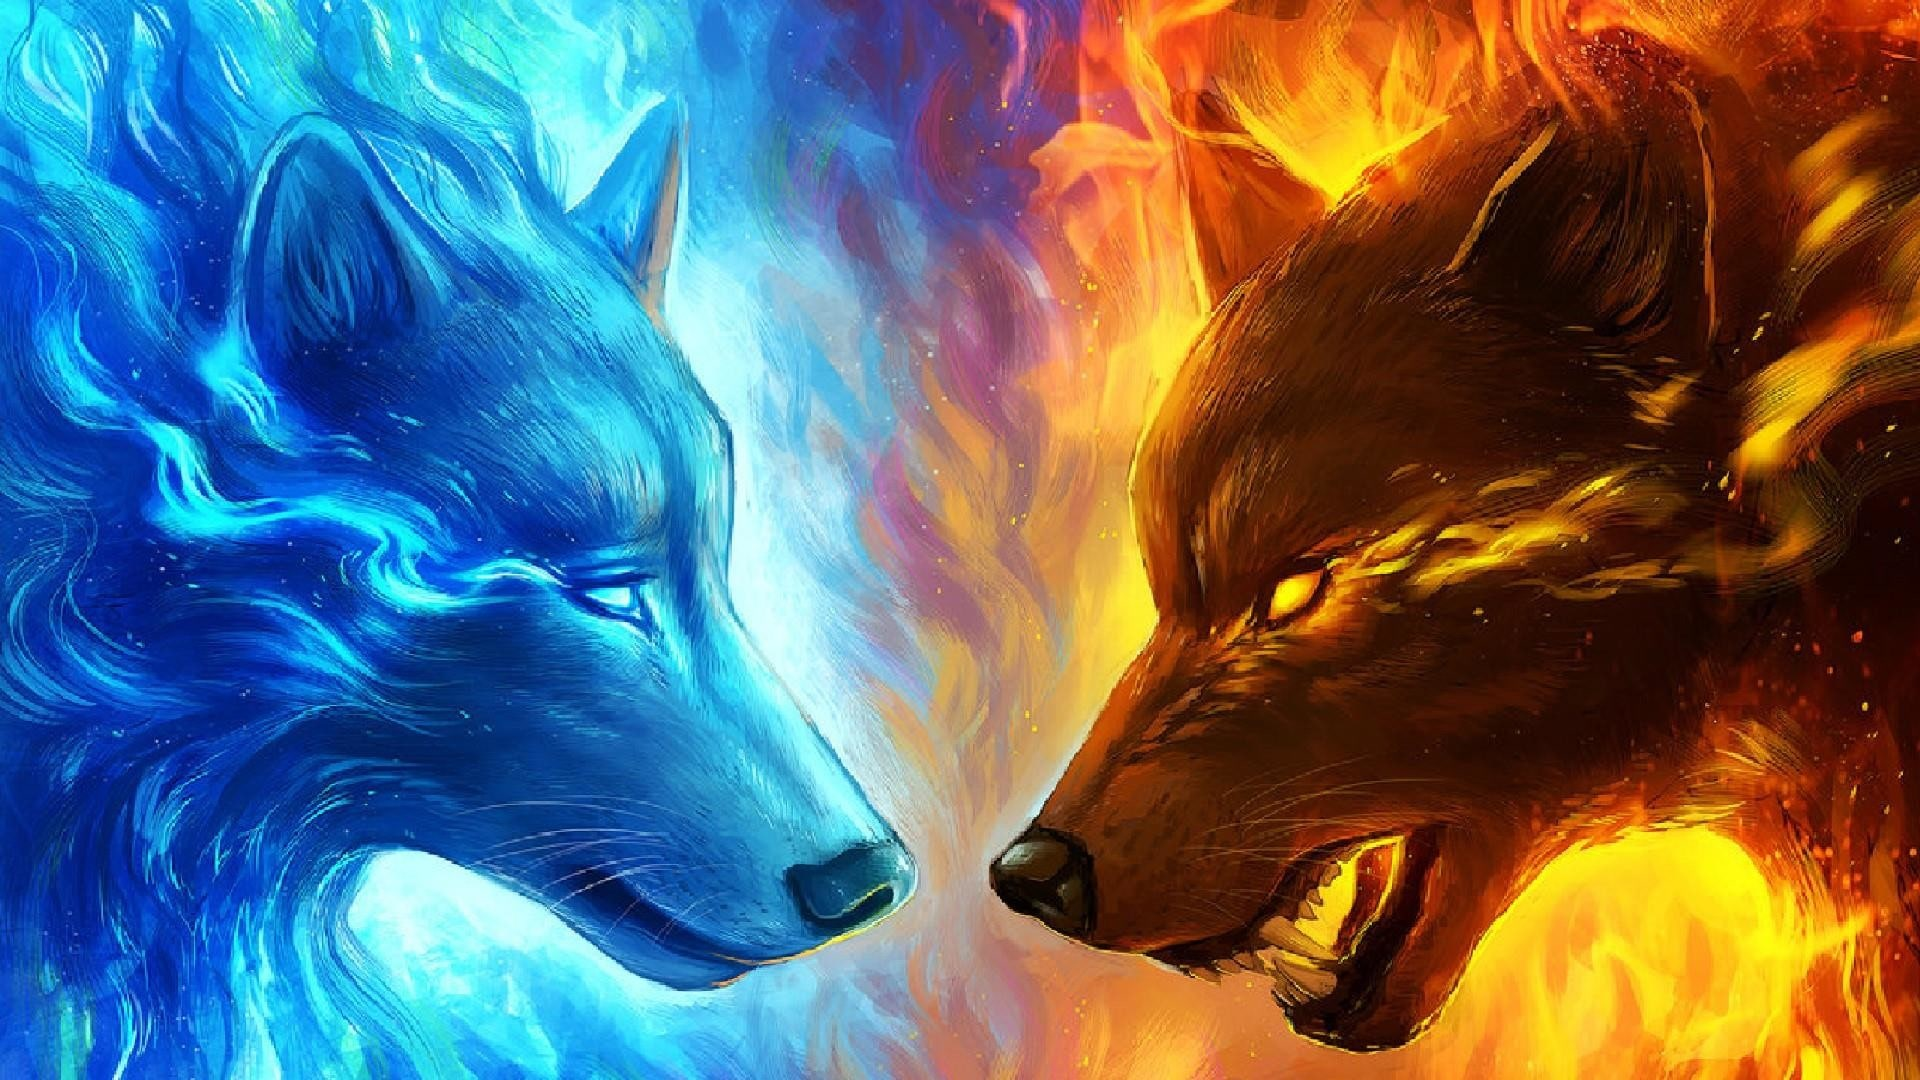 Wolf HD Wallpapers   KoLPaPer   Awesome HD Wallpapers 1920x1080